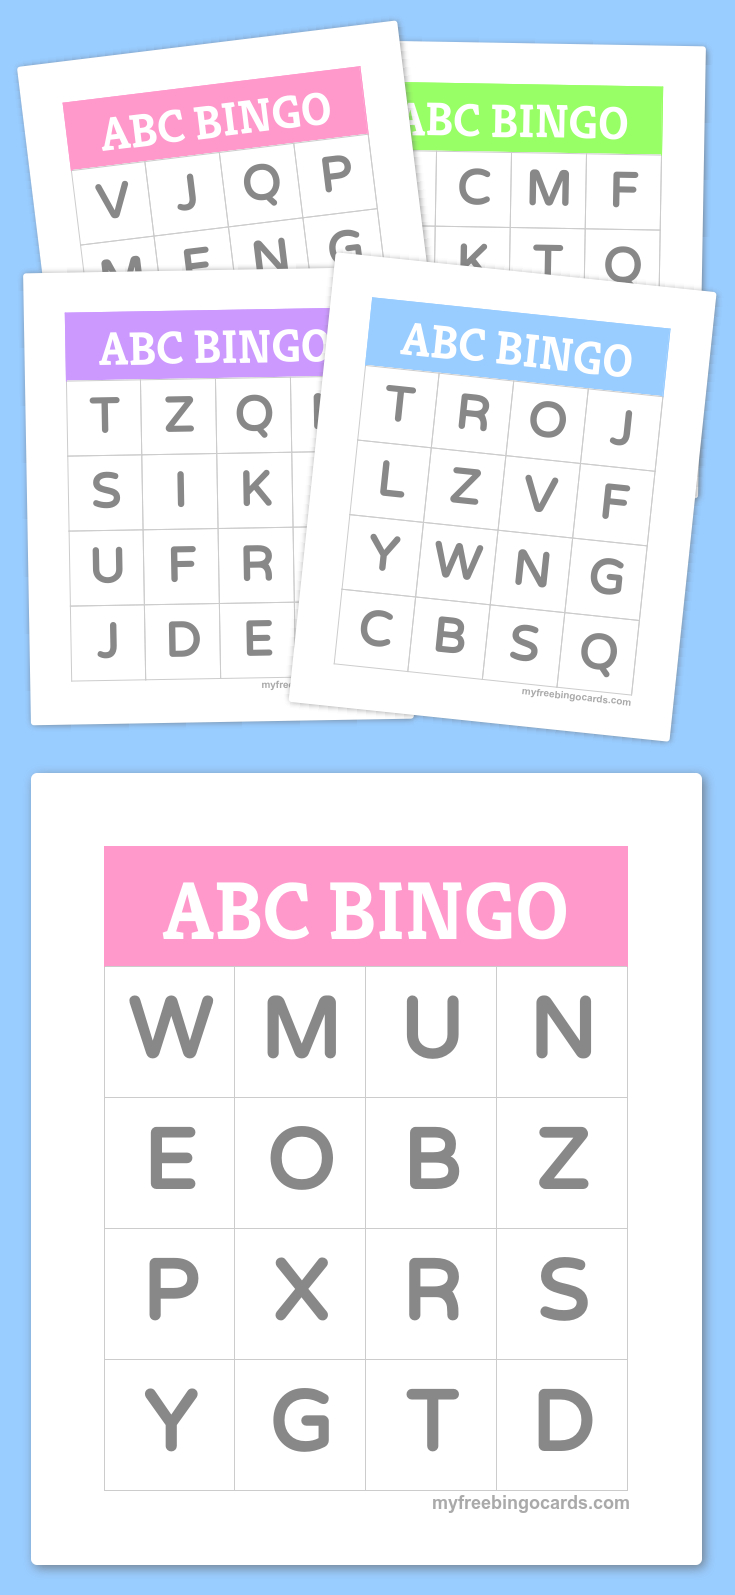 Free Printable Bingo Cards | Kindergarten | Alphabet Bingo, Abc - Free Printable Spanish Bingo Cards